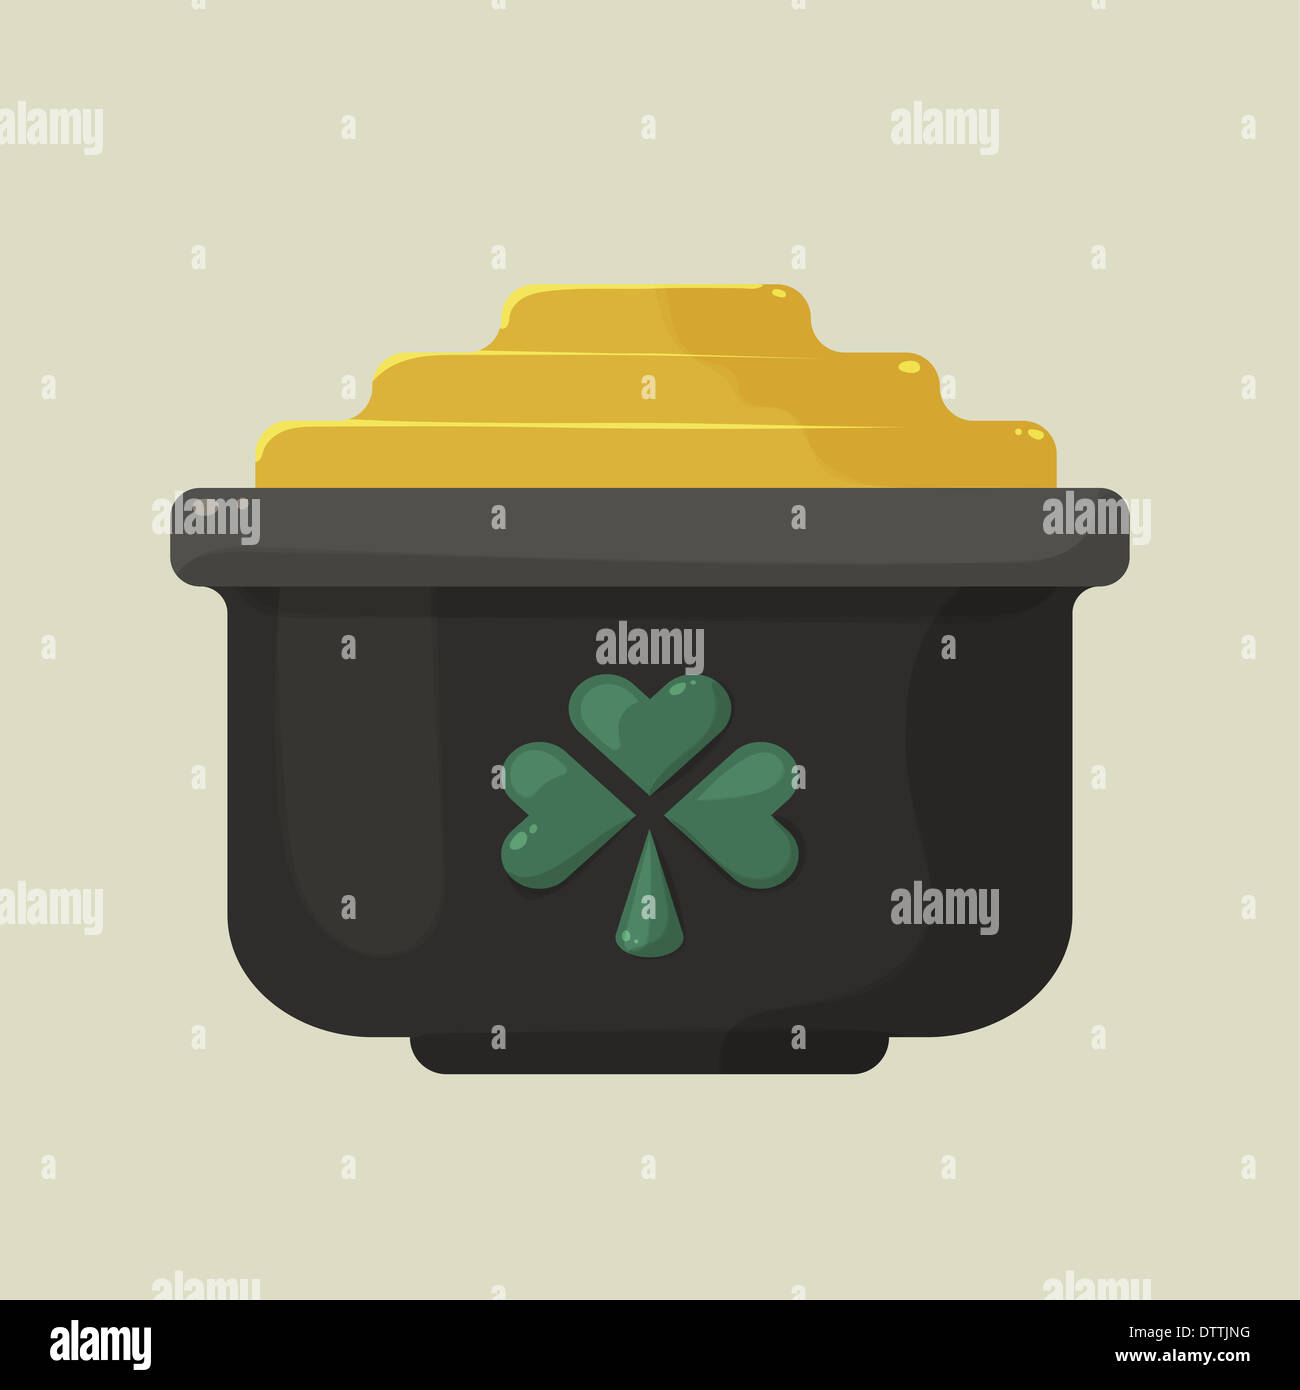 Stylized shiny cartoon pot of gold with a green shamrock - Stock Image